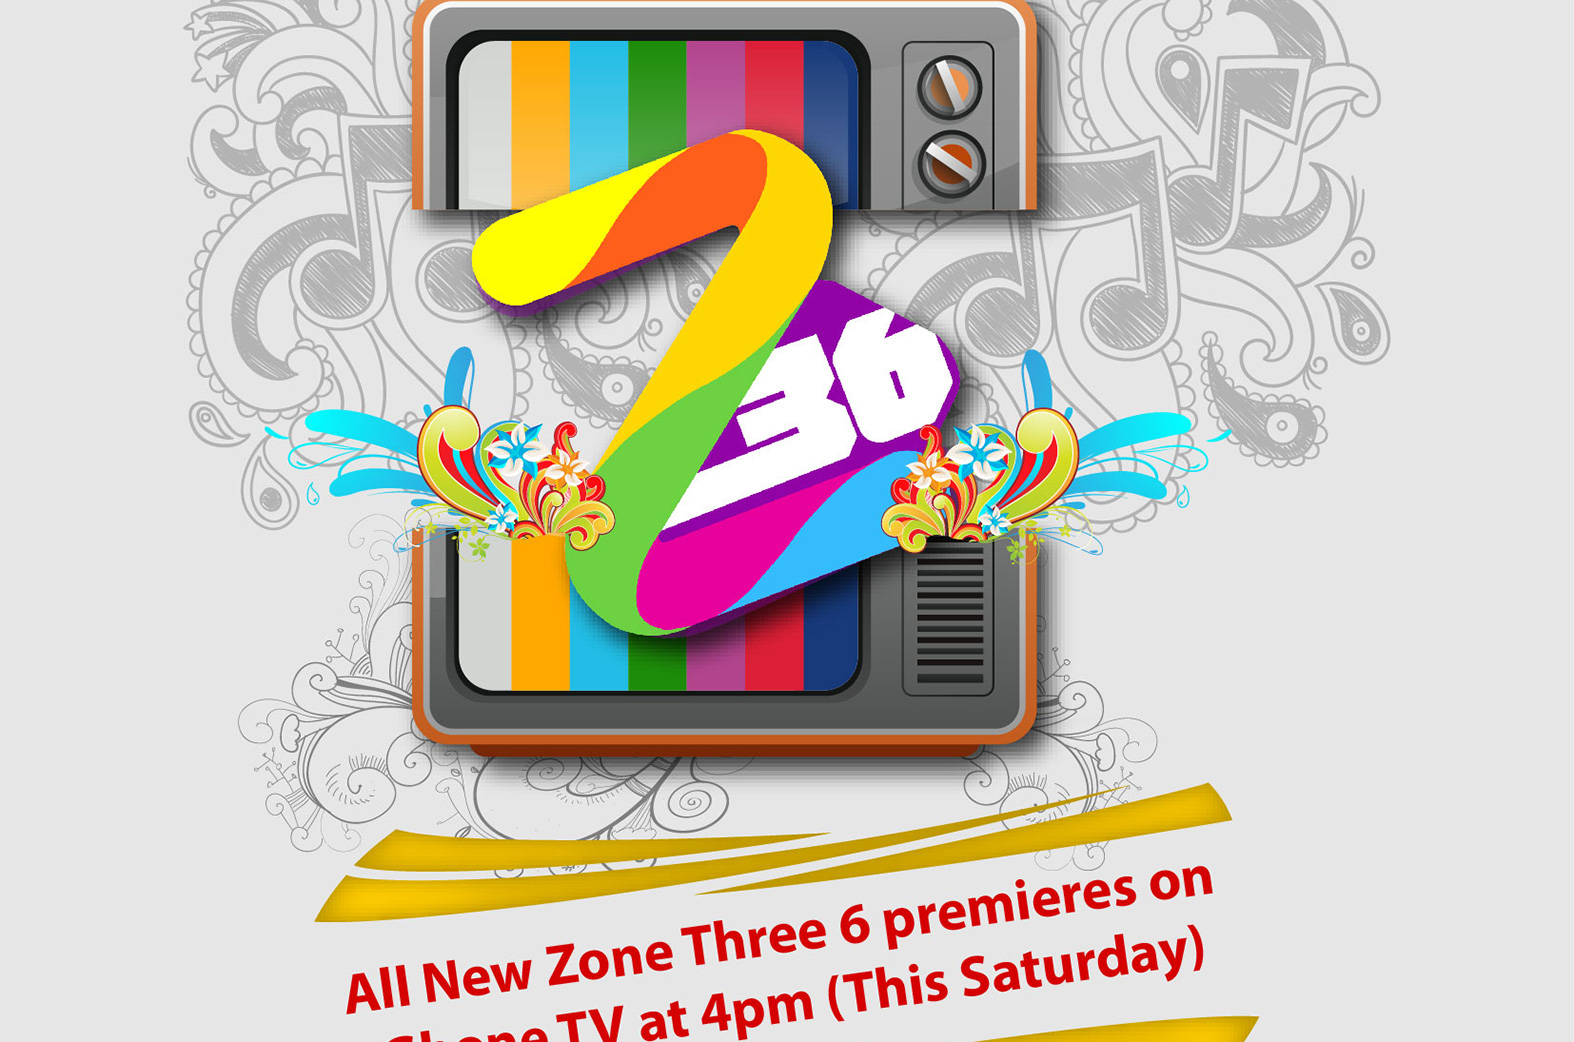 Zone Three 6